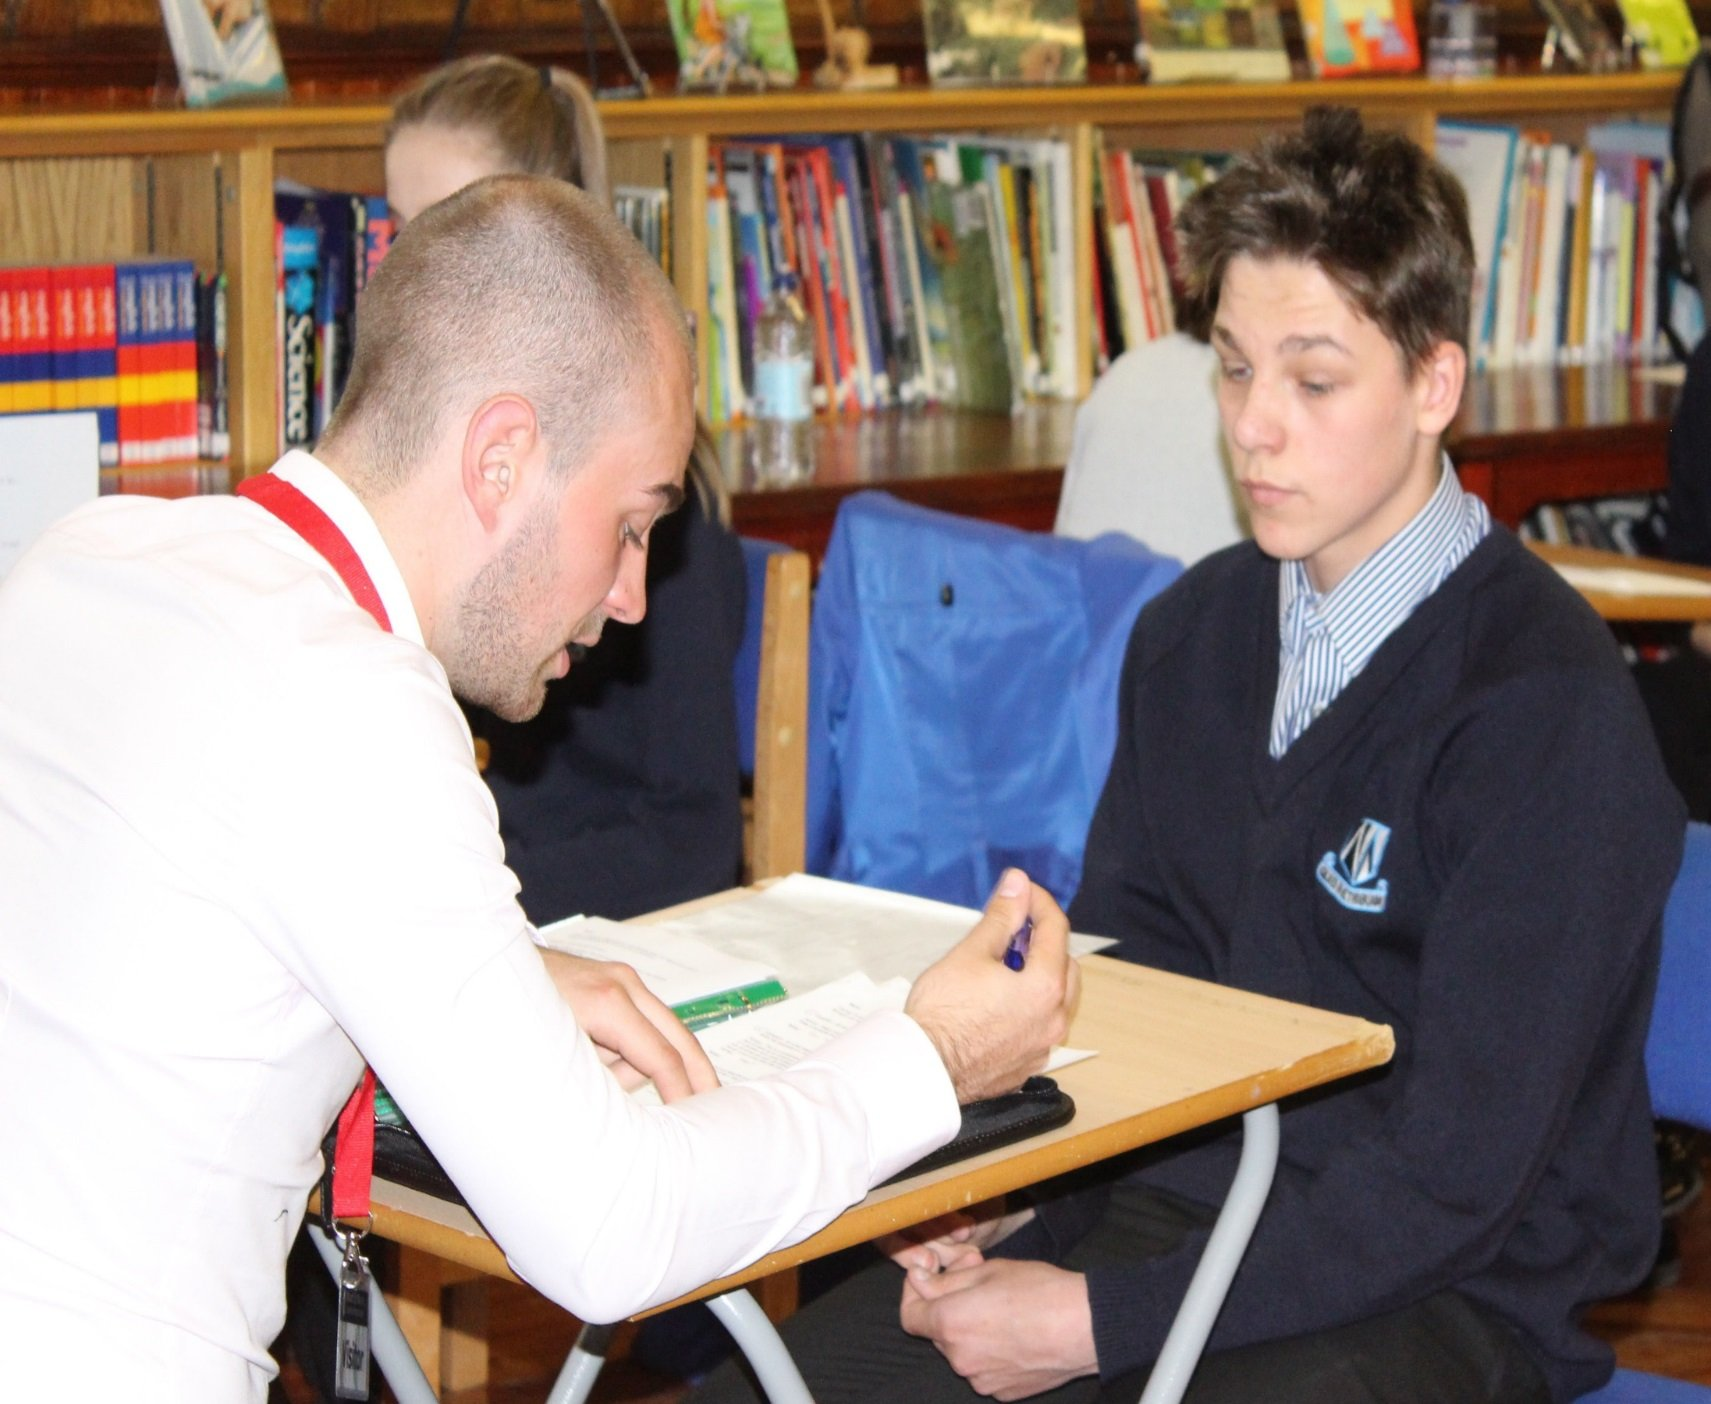 Our business development manager interviewing a school pupil